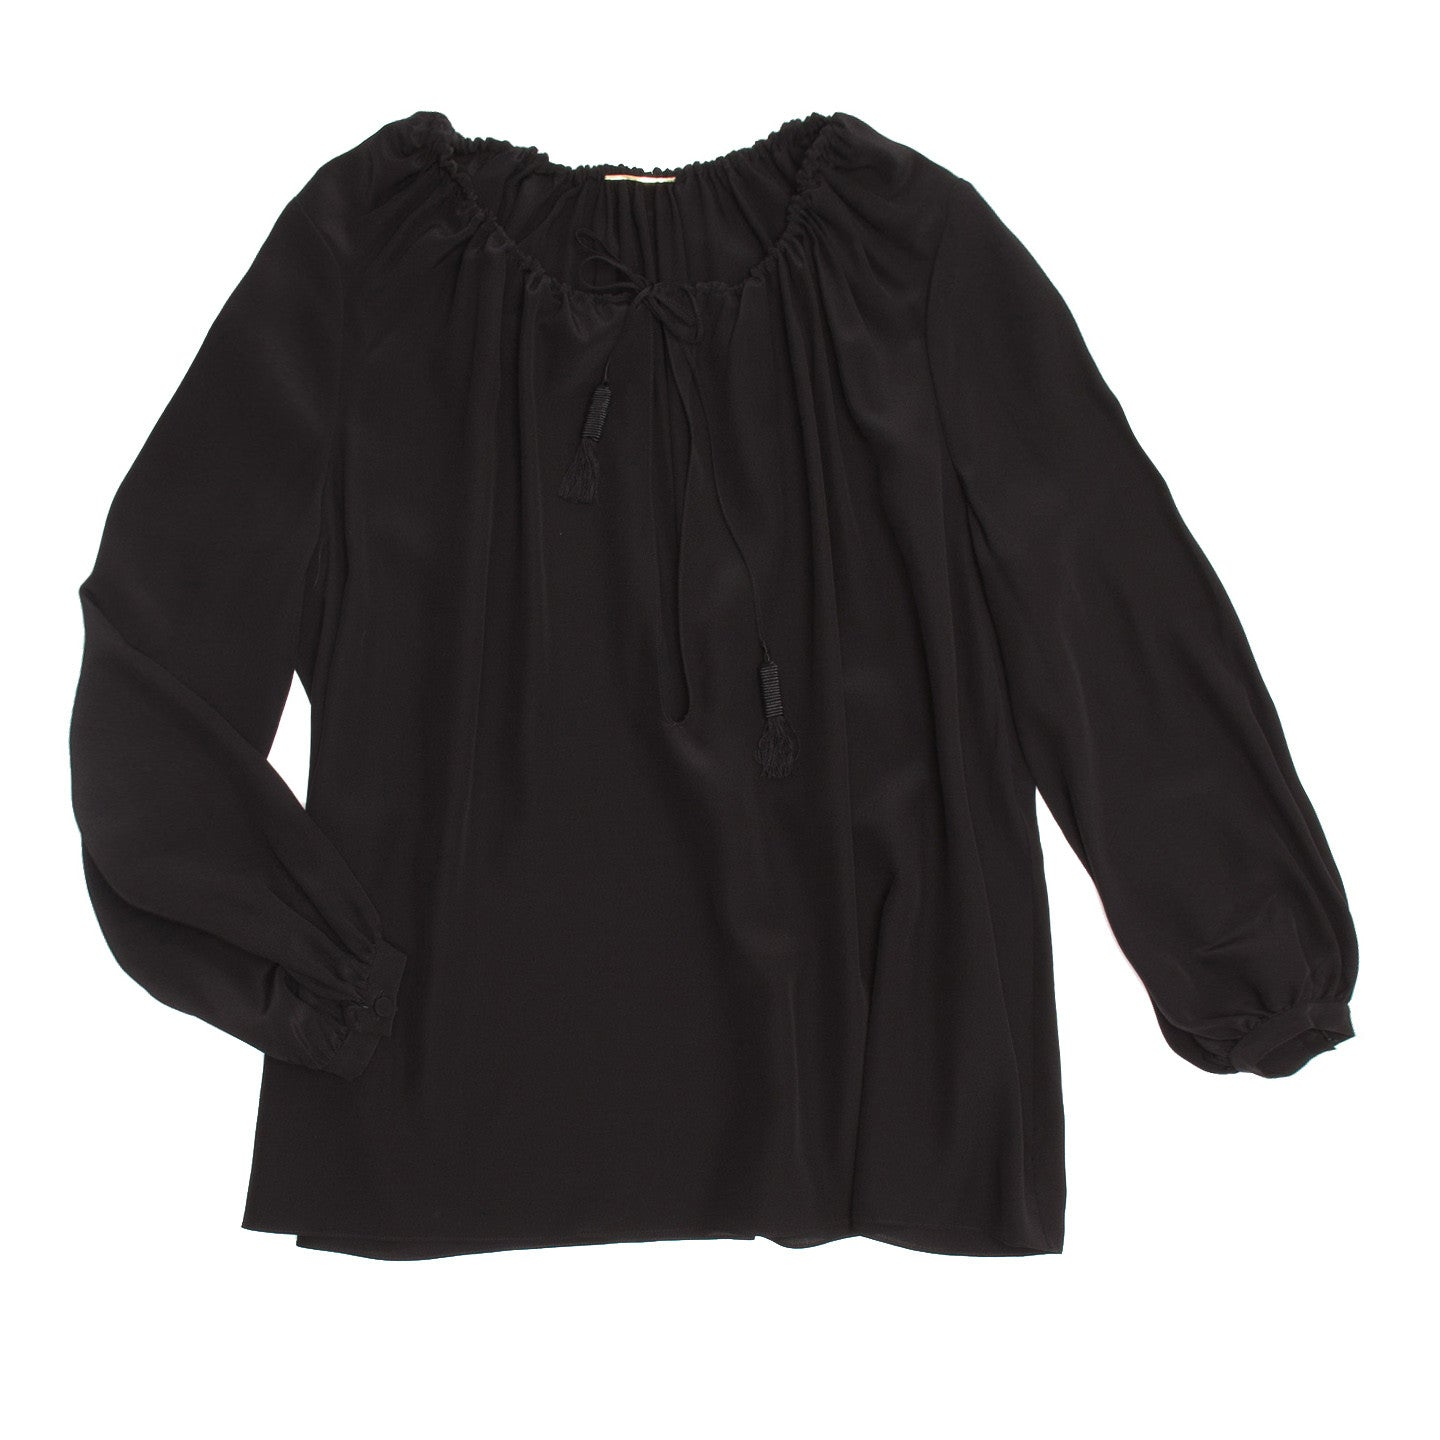 YSL Black Silk Peasant Style Top, Size 44 (French)